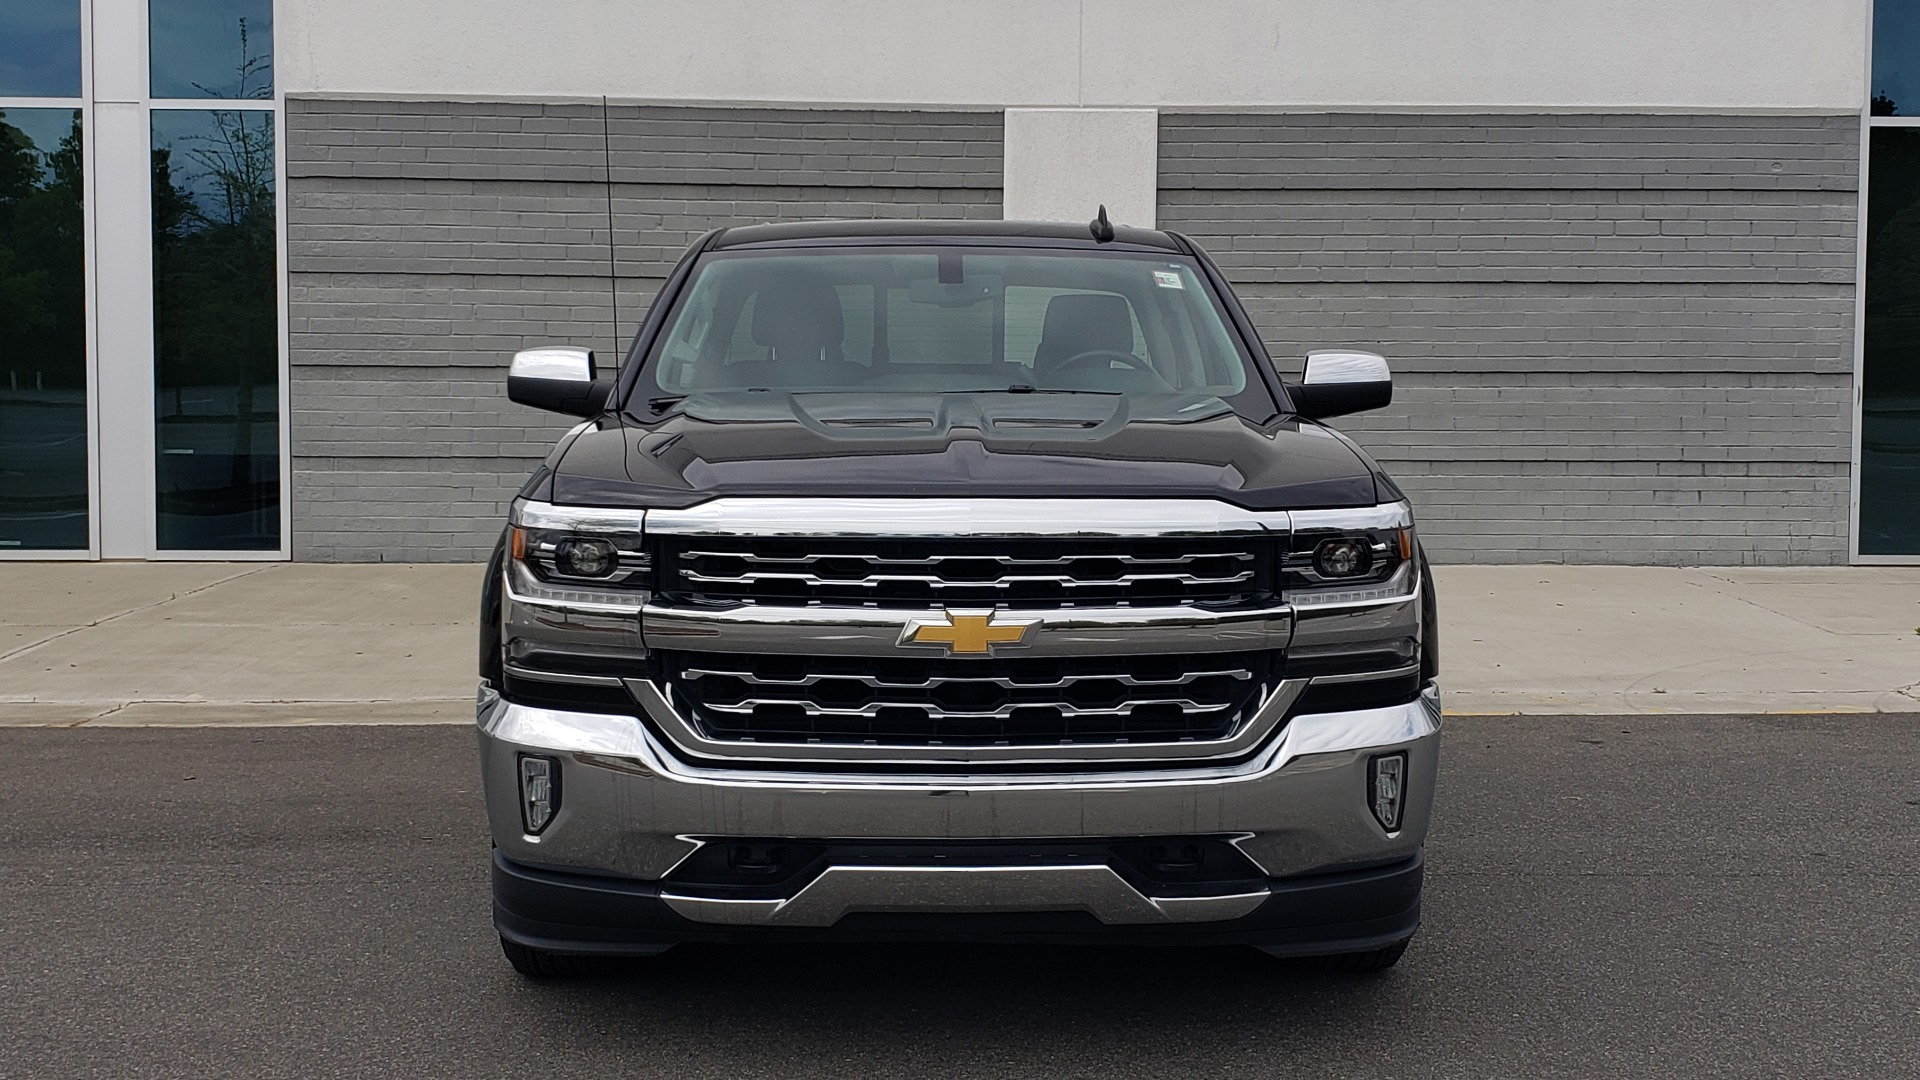 Used 2018 Chevrolet SILVERADO 1500 LTZ 1LZ / 5.3L V8 / 2WD / 6-SPD AUTO / DOUBLECAB / REARVIEW for sale Sold at Formula Imports in Charlotte NC 28227 14